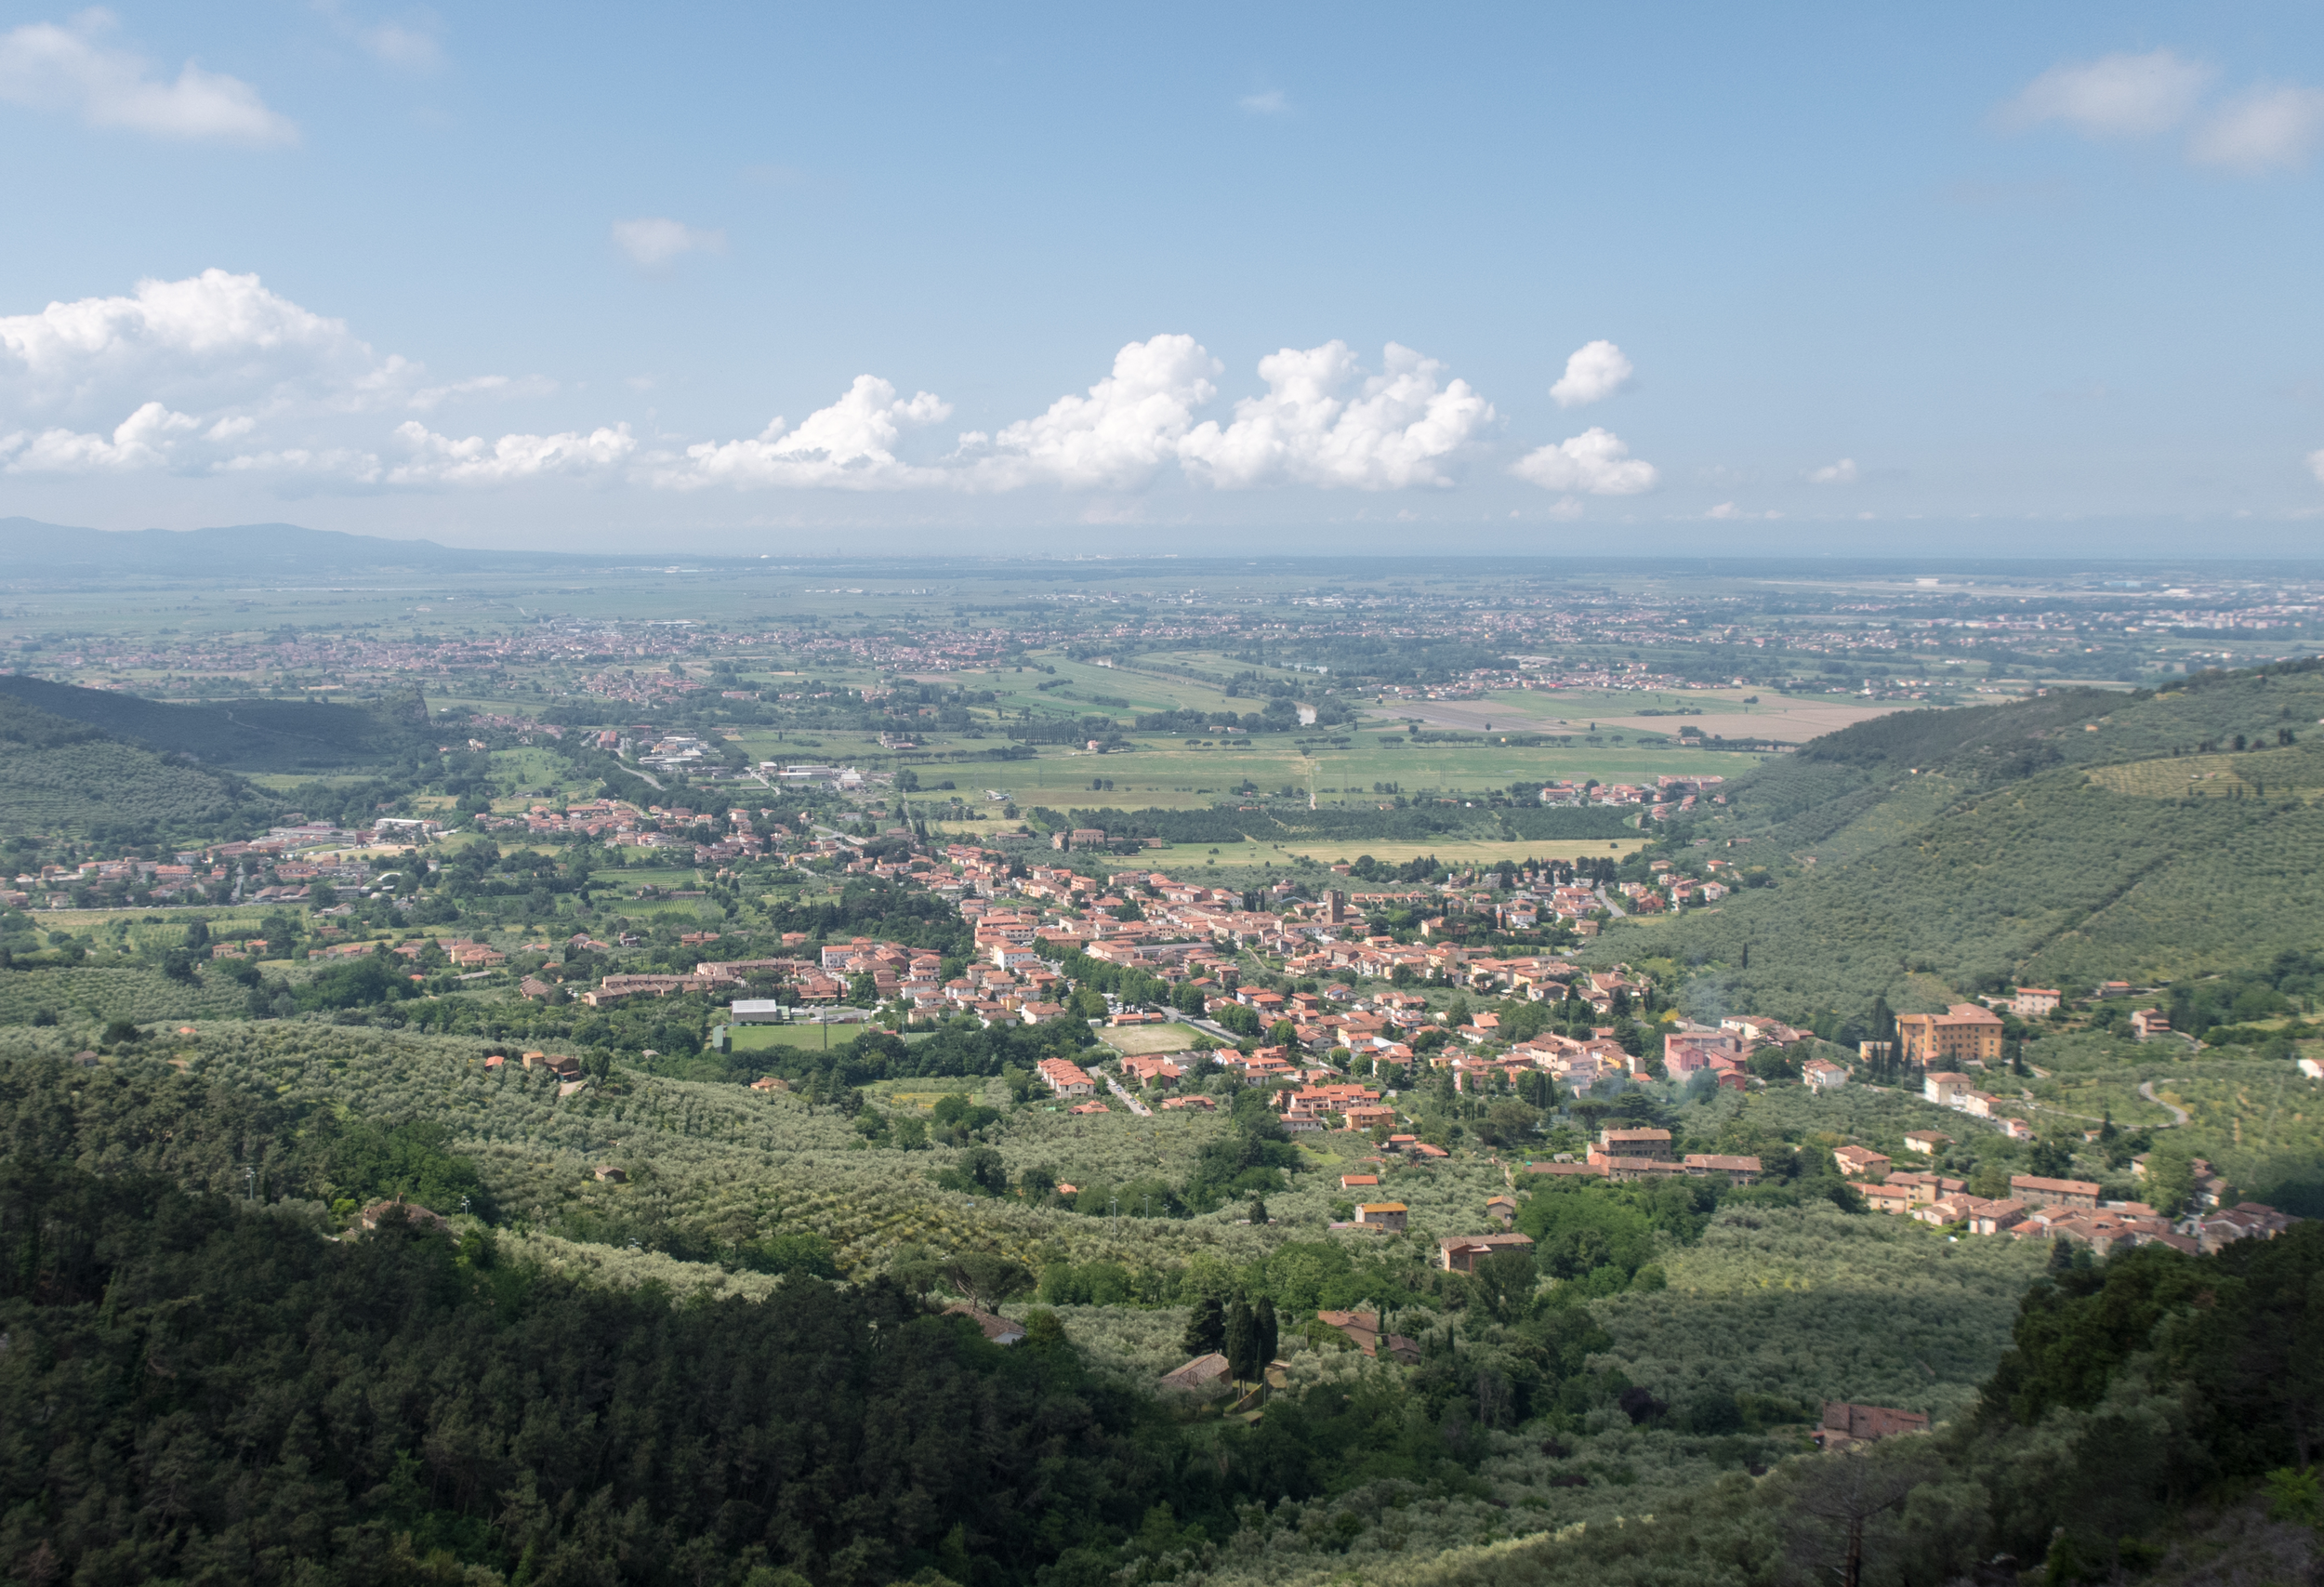 8. Monte Serra - 8.4km, avg. 7%This mountain is Pisa's pride and joy. It's their only mountain, and with an ancient history of animosity, they'll never let you presume it belongs to the Lucchesi. It can be